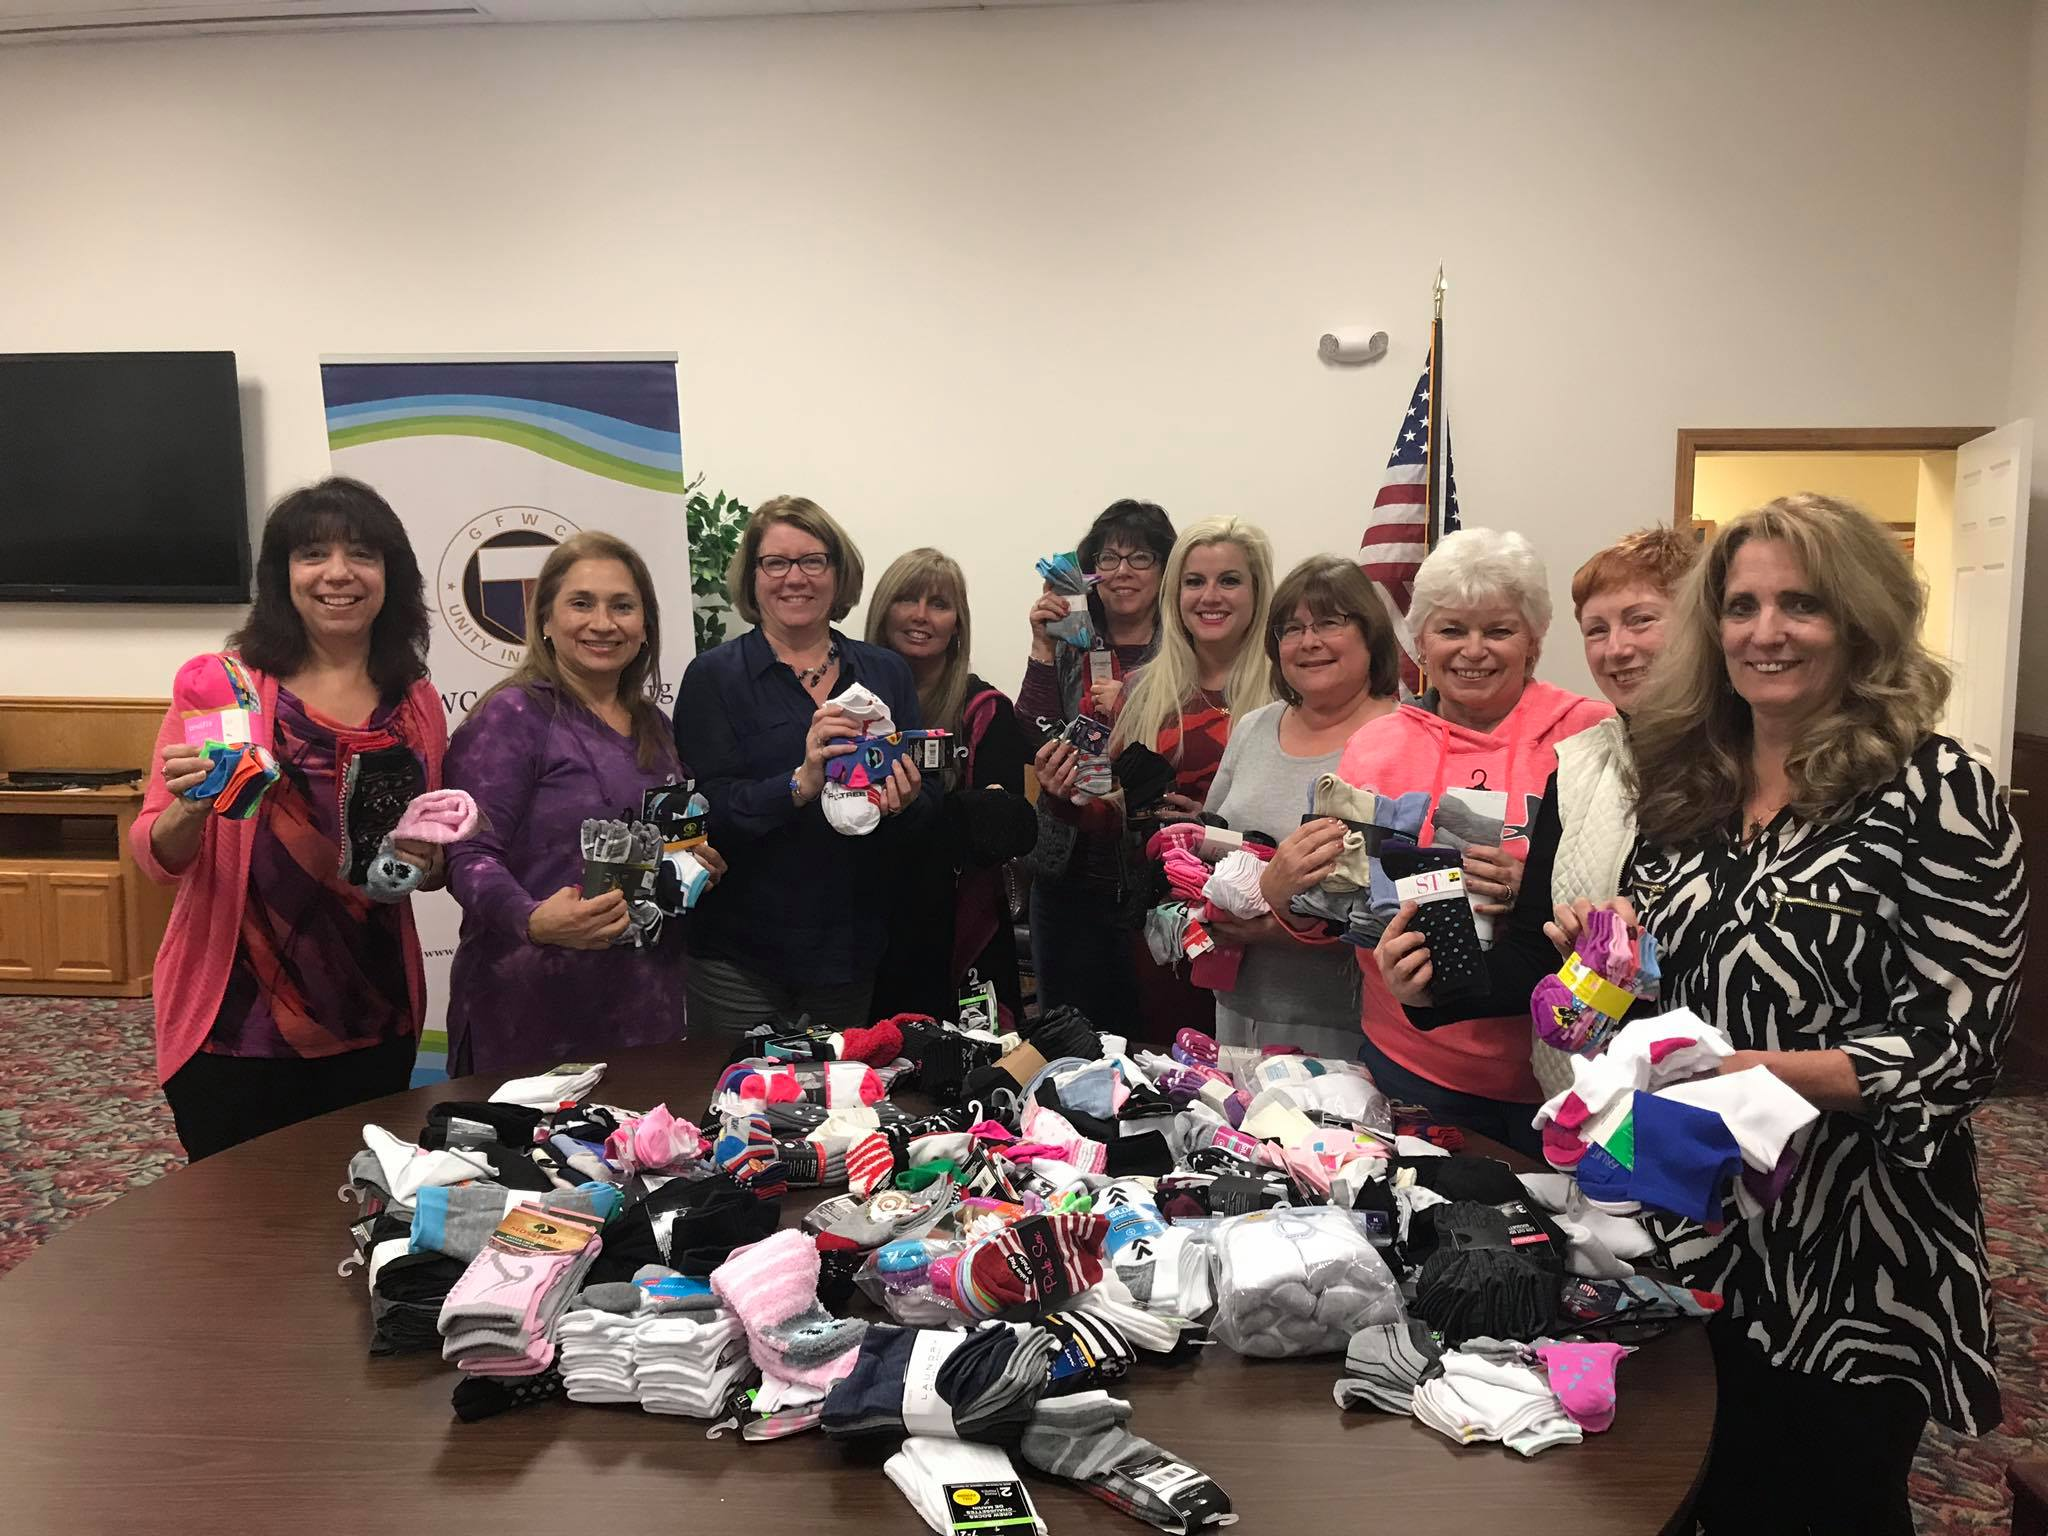 September-November 2018: Step Away from Abuse Sock Collection the Club donated to Family Services of Blair County.